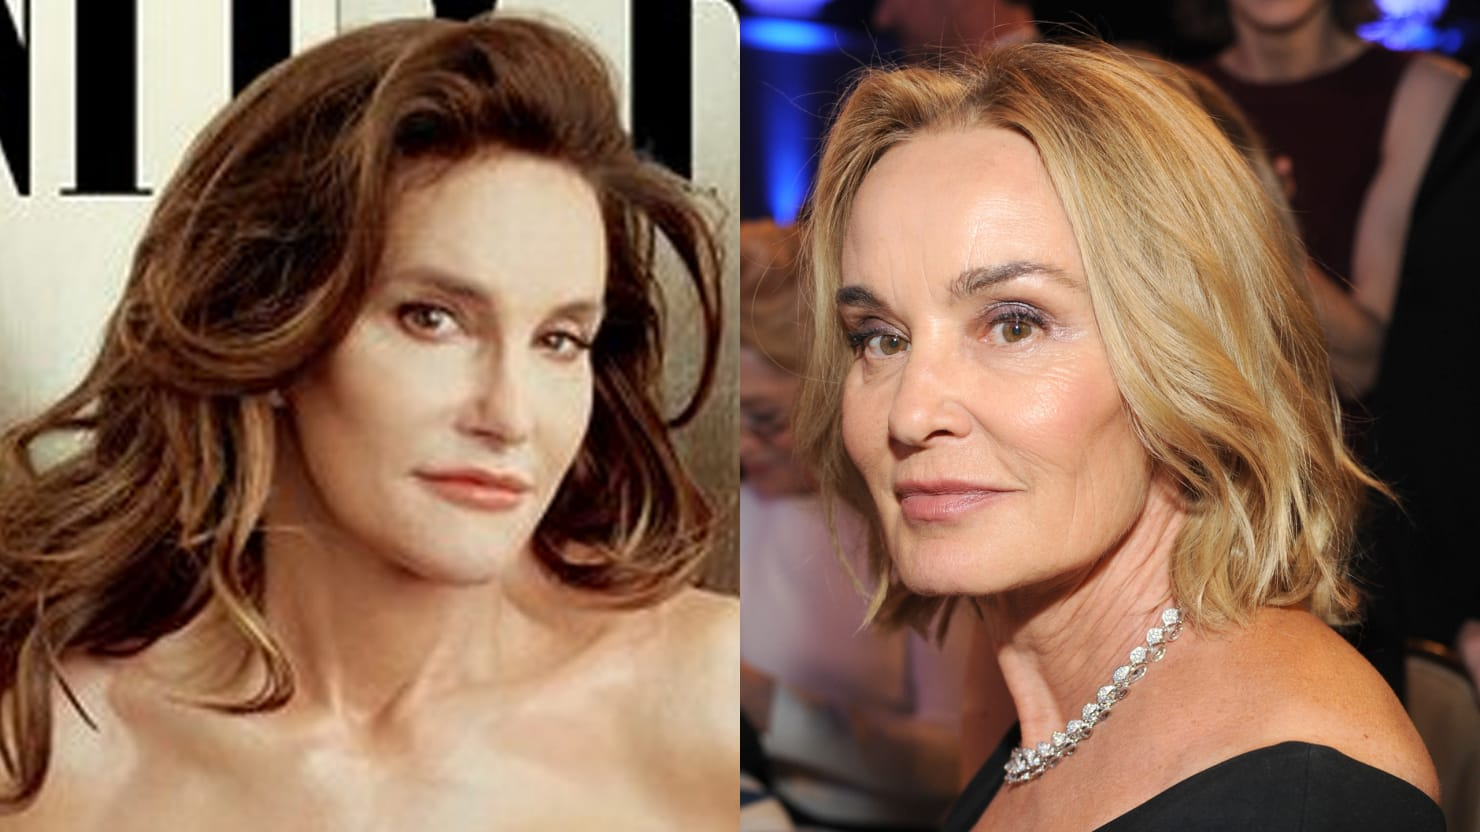 Jessica Lange Learns About Caitlyn Jenner Comparisons: 'That's So Wonderful'